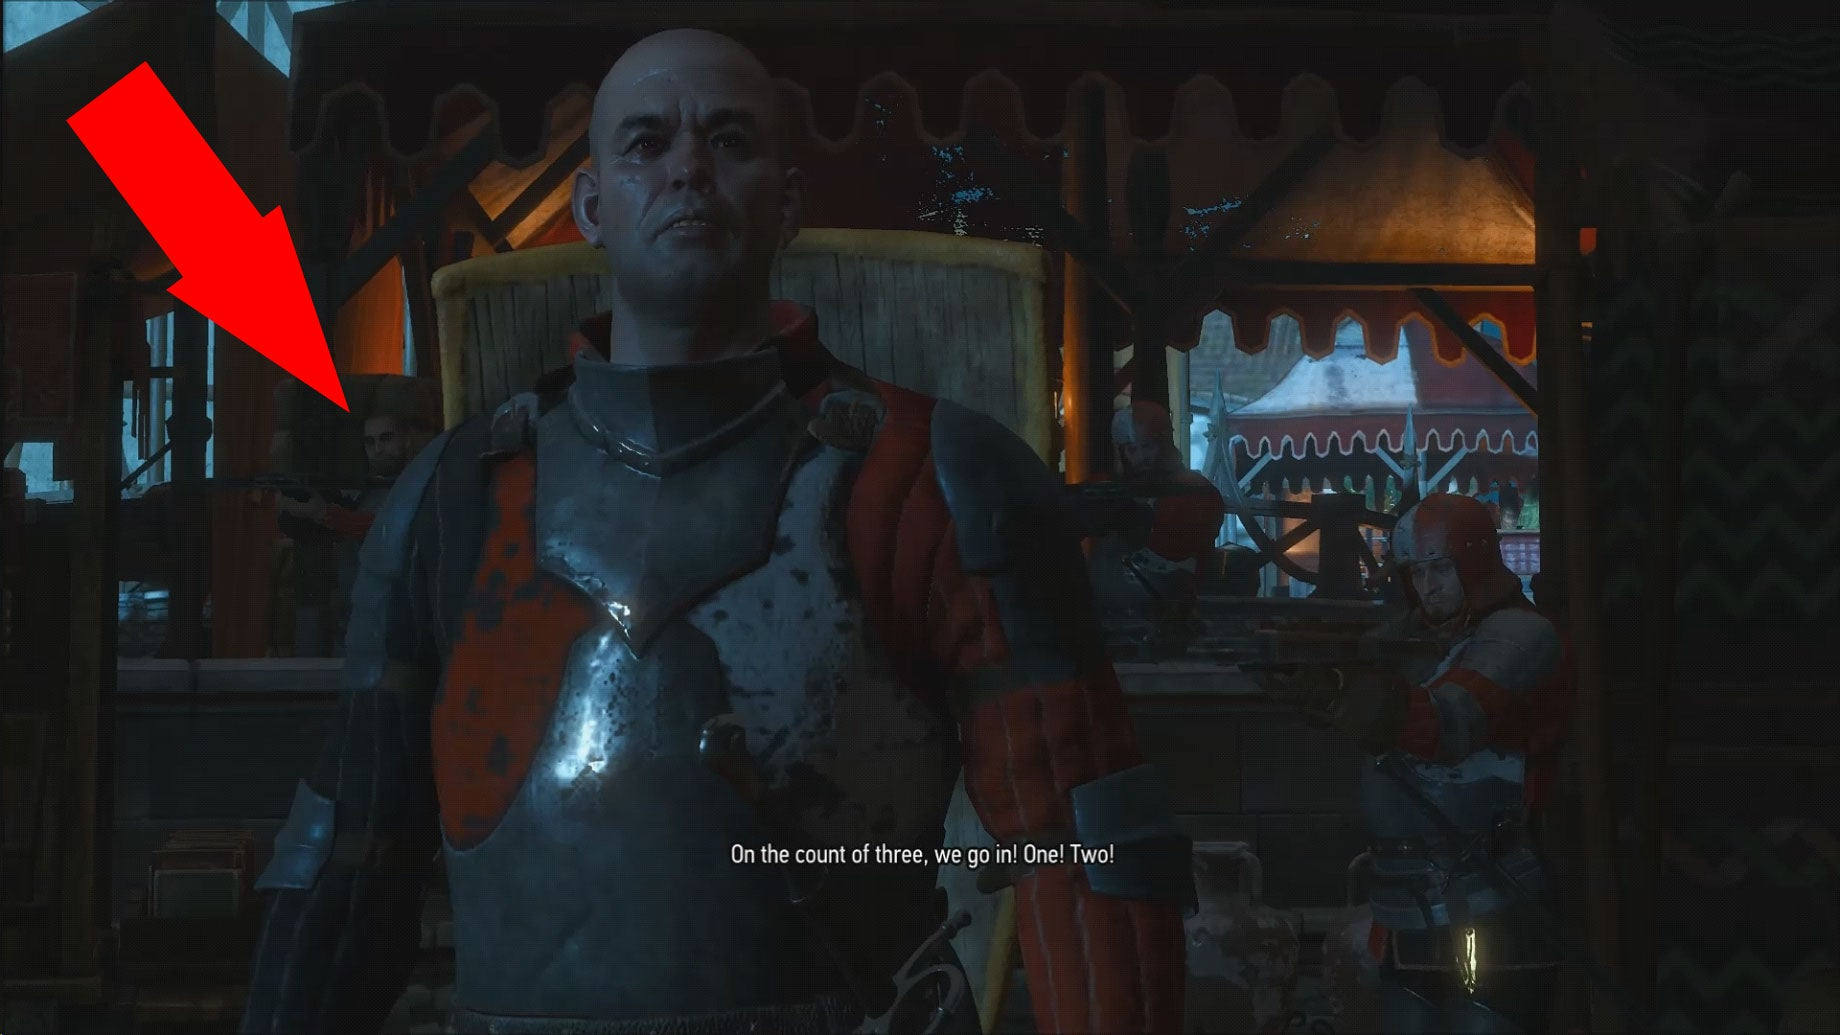 The Witcher 3 Riddle That Players Couldn't Quite Solve